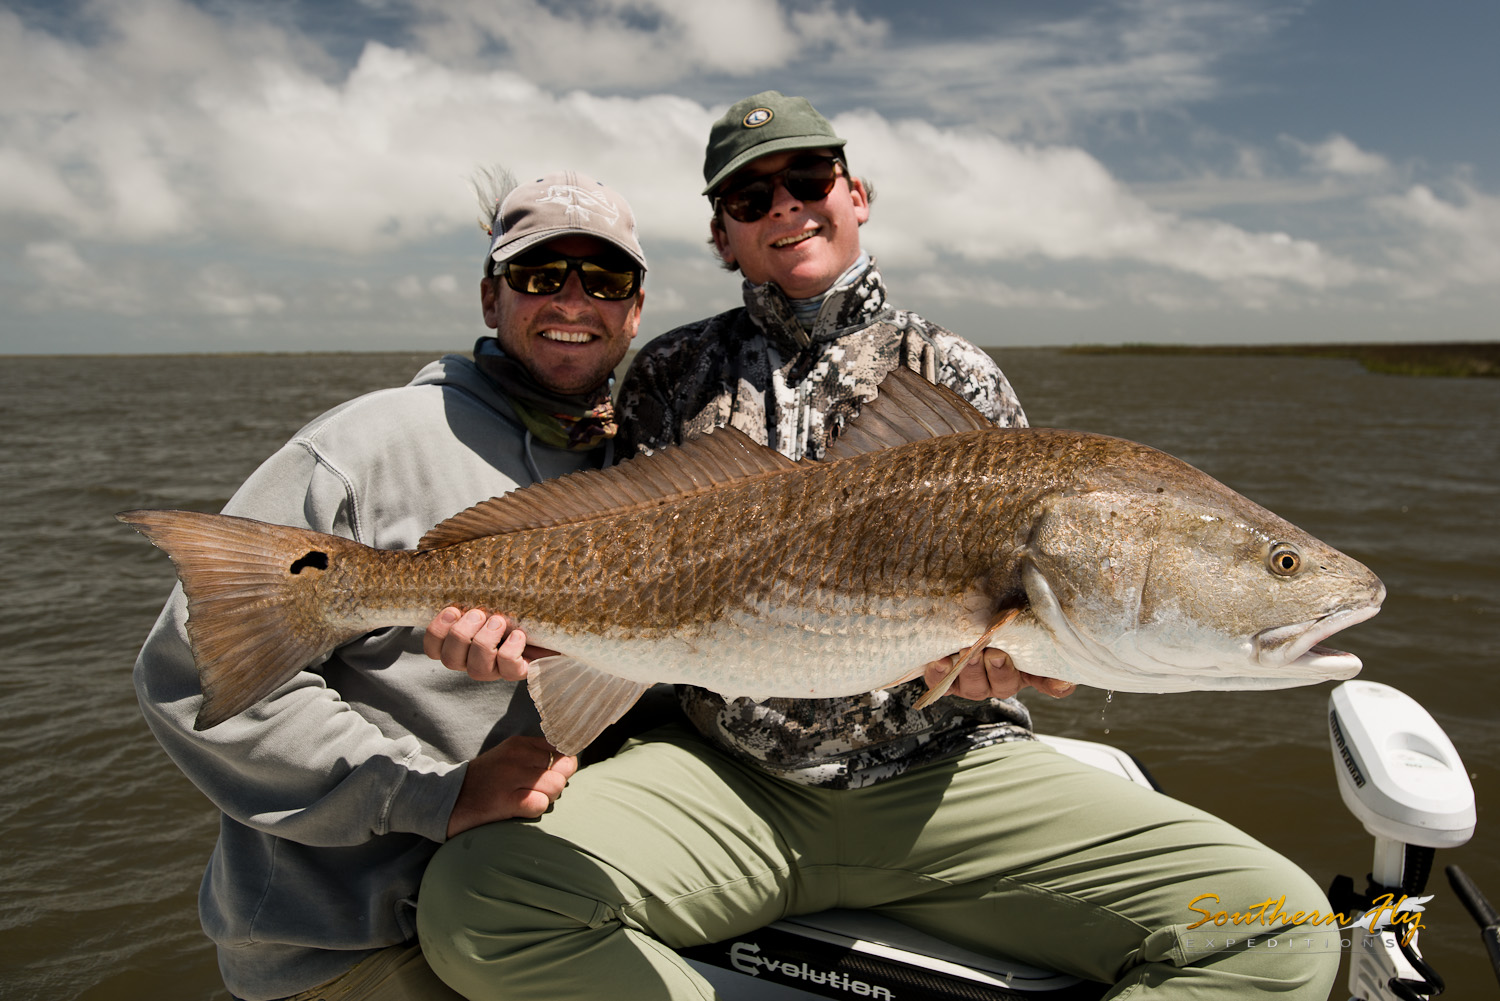 2019-03-29_SouthernFlyExpeditions_NewOrleans_TylerTreece&DylanTreece-3.jpg